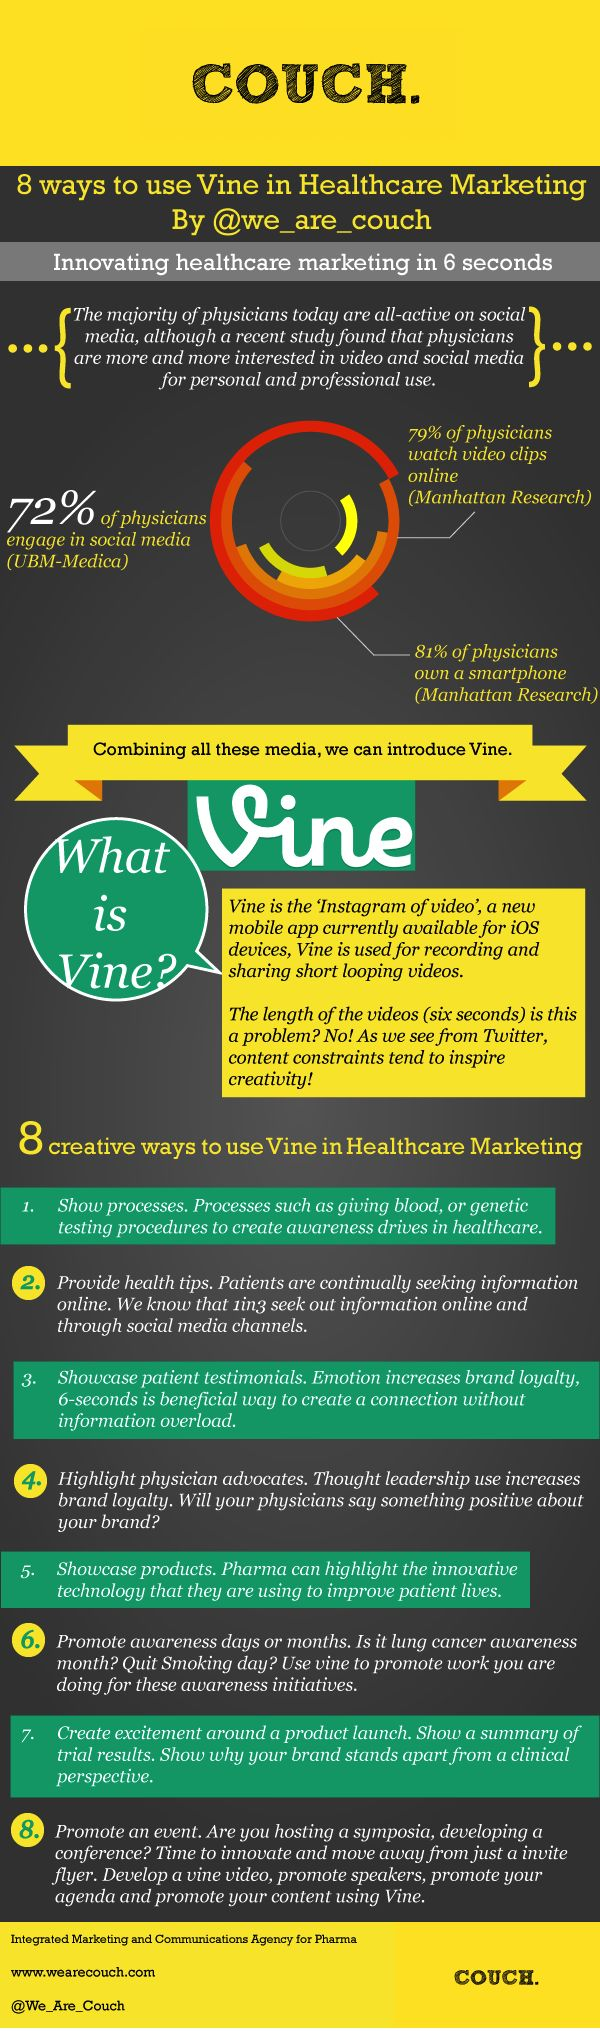 Infographic: 8 ways to use Vine in Healthcare Marketing